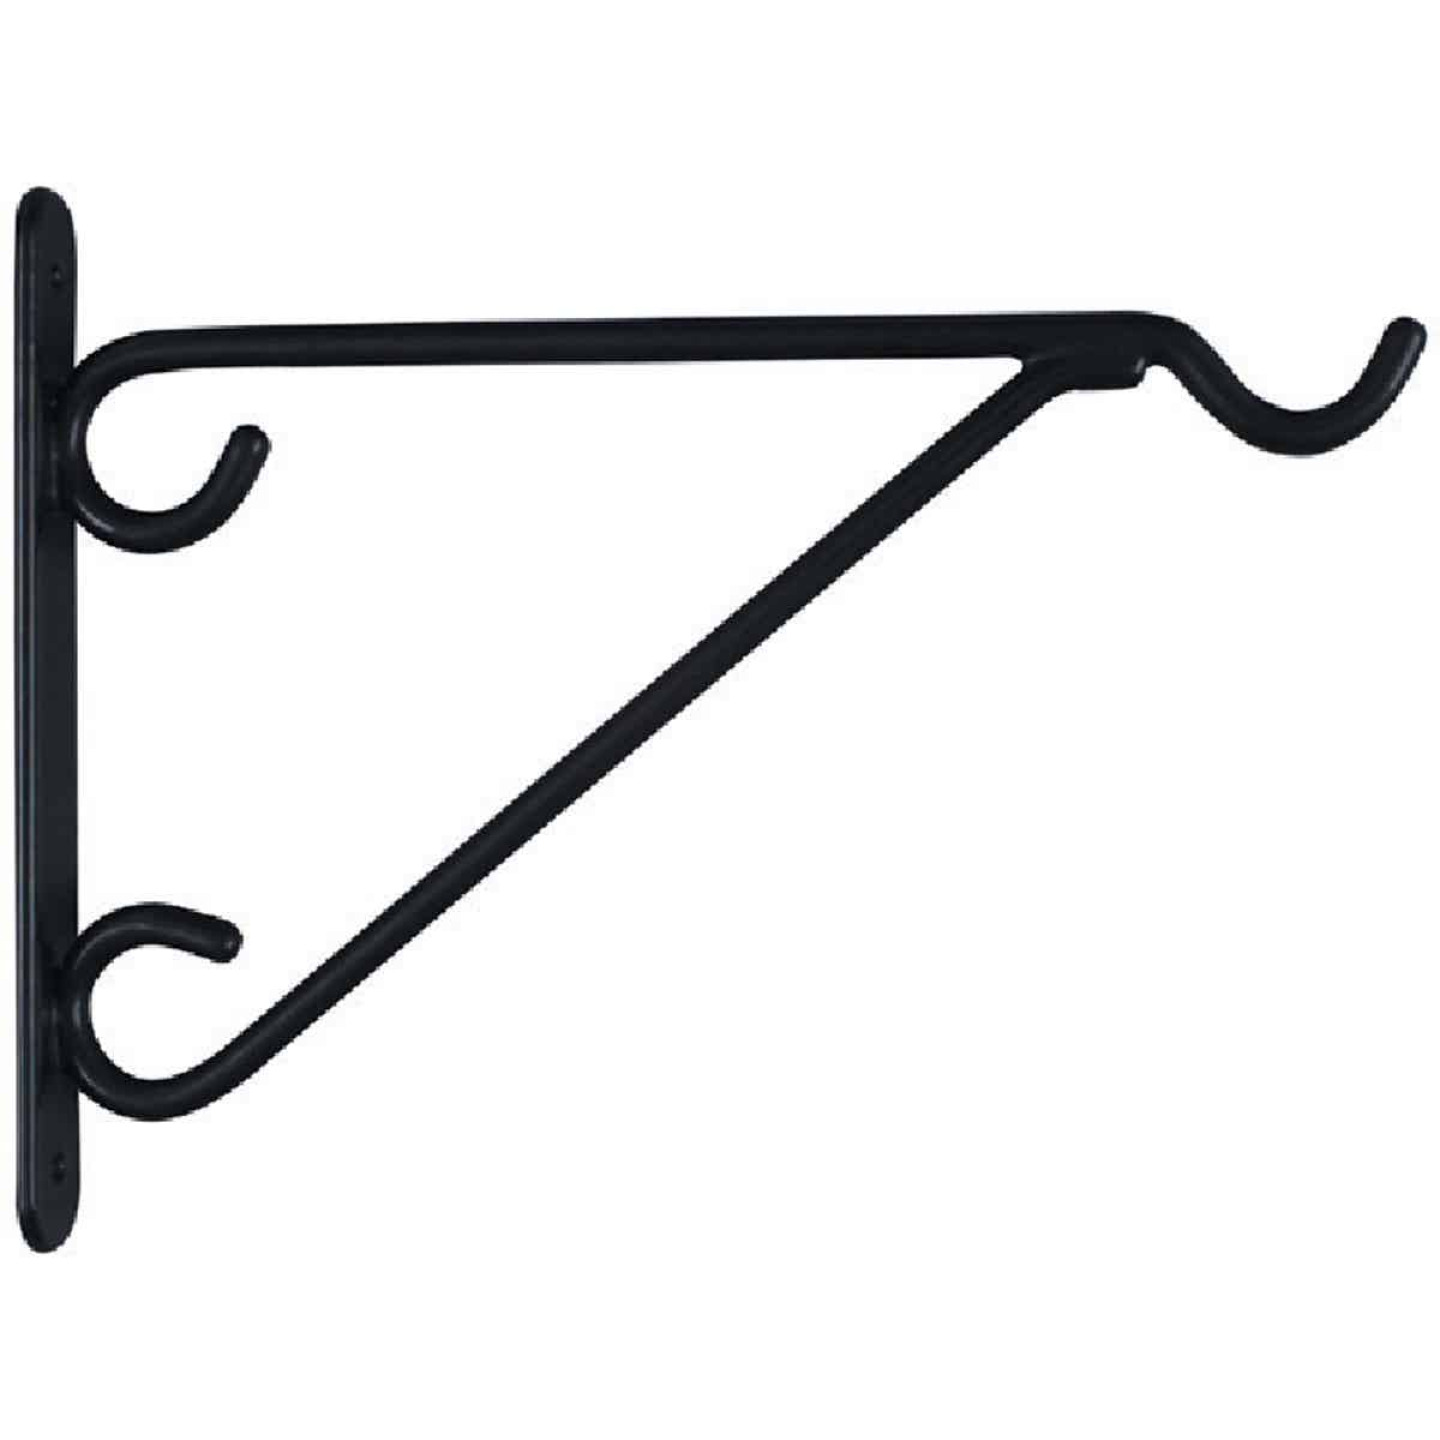 National 8 In. Black Vinyl-Coated Steel Plant Hanger Bracket Image 3